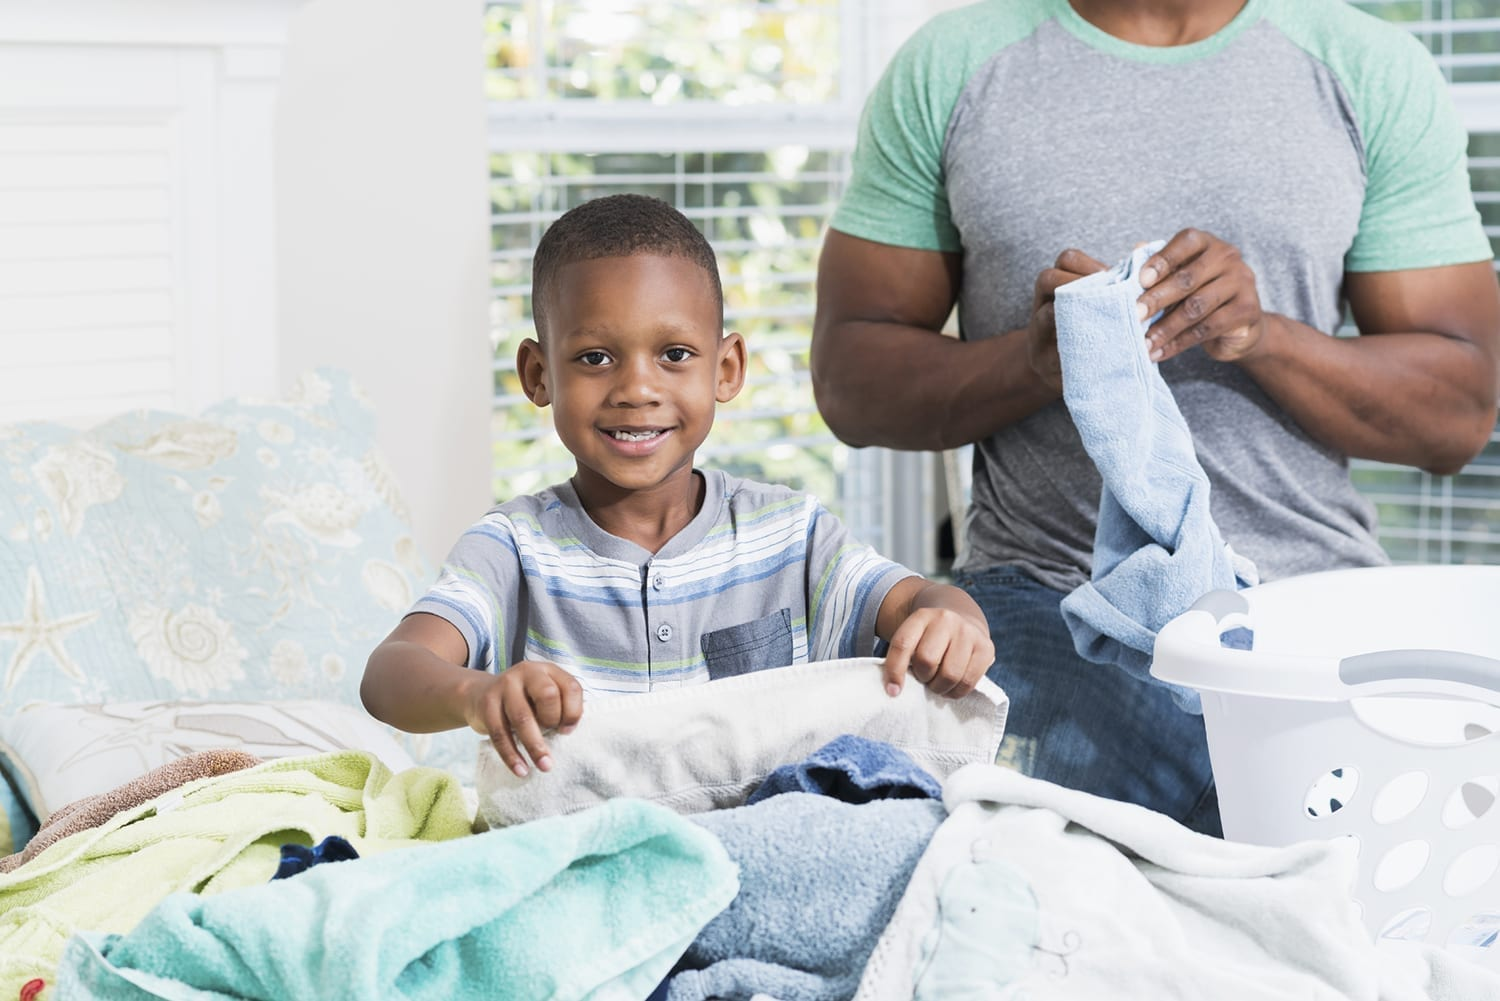 Laundry 101 for Kids